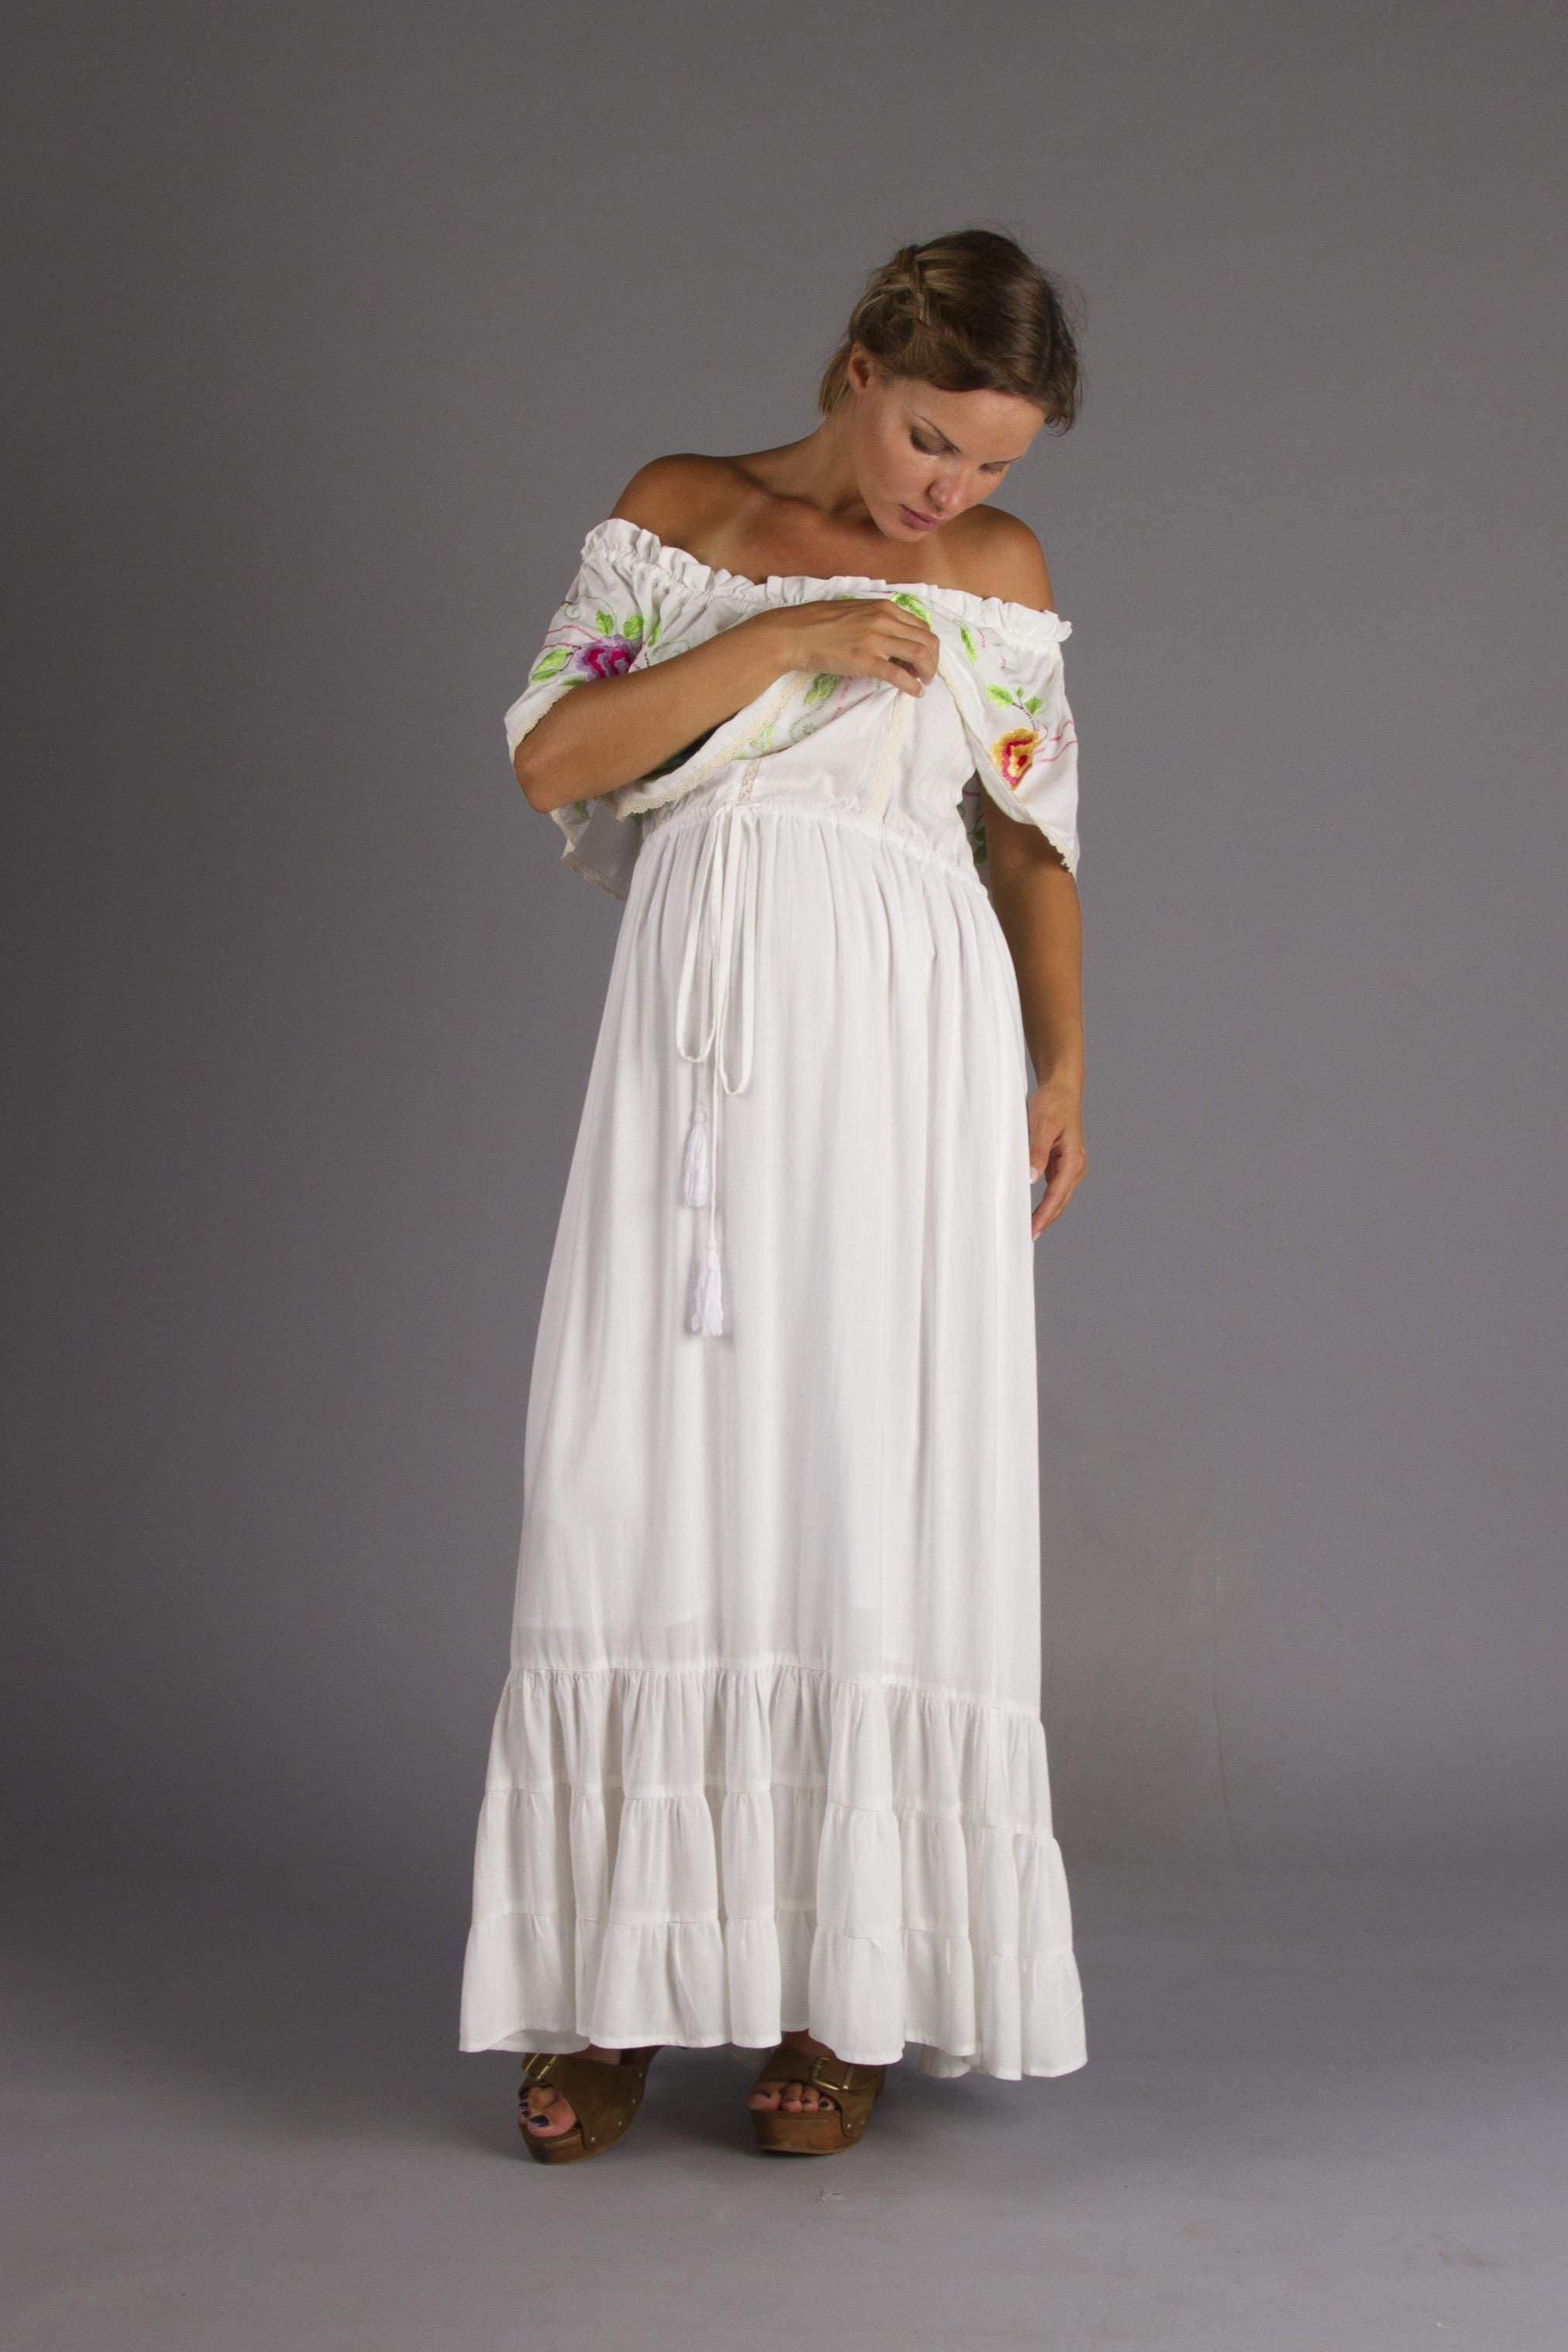 Seeker lover keeper nursing dress embroidered nursing maxi dress seeker lover keeper nursing dress embroidered nursing maxi dress fillyboo boho inspired maternity ombrellifo Image collections